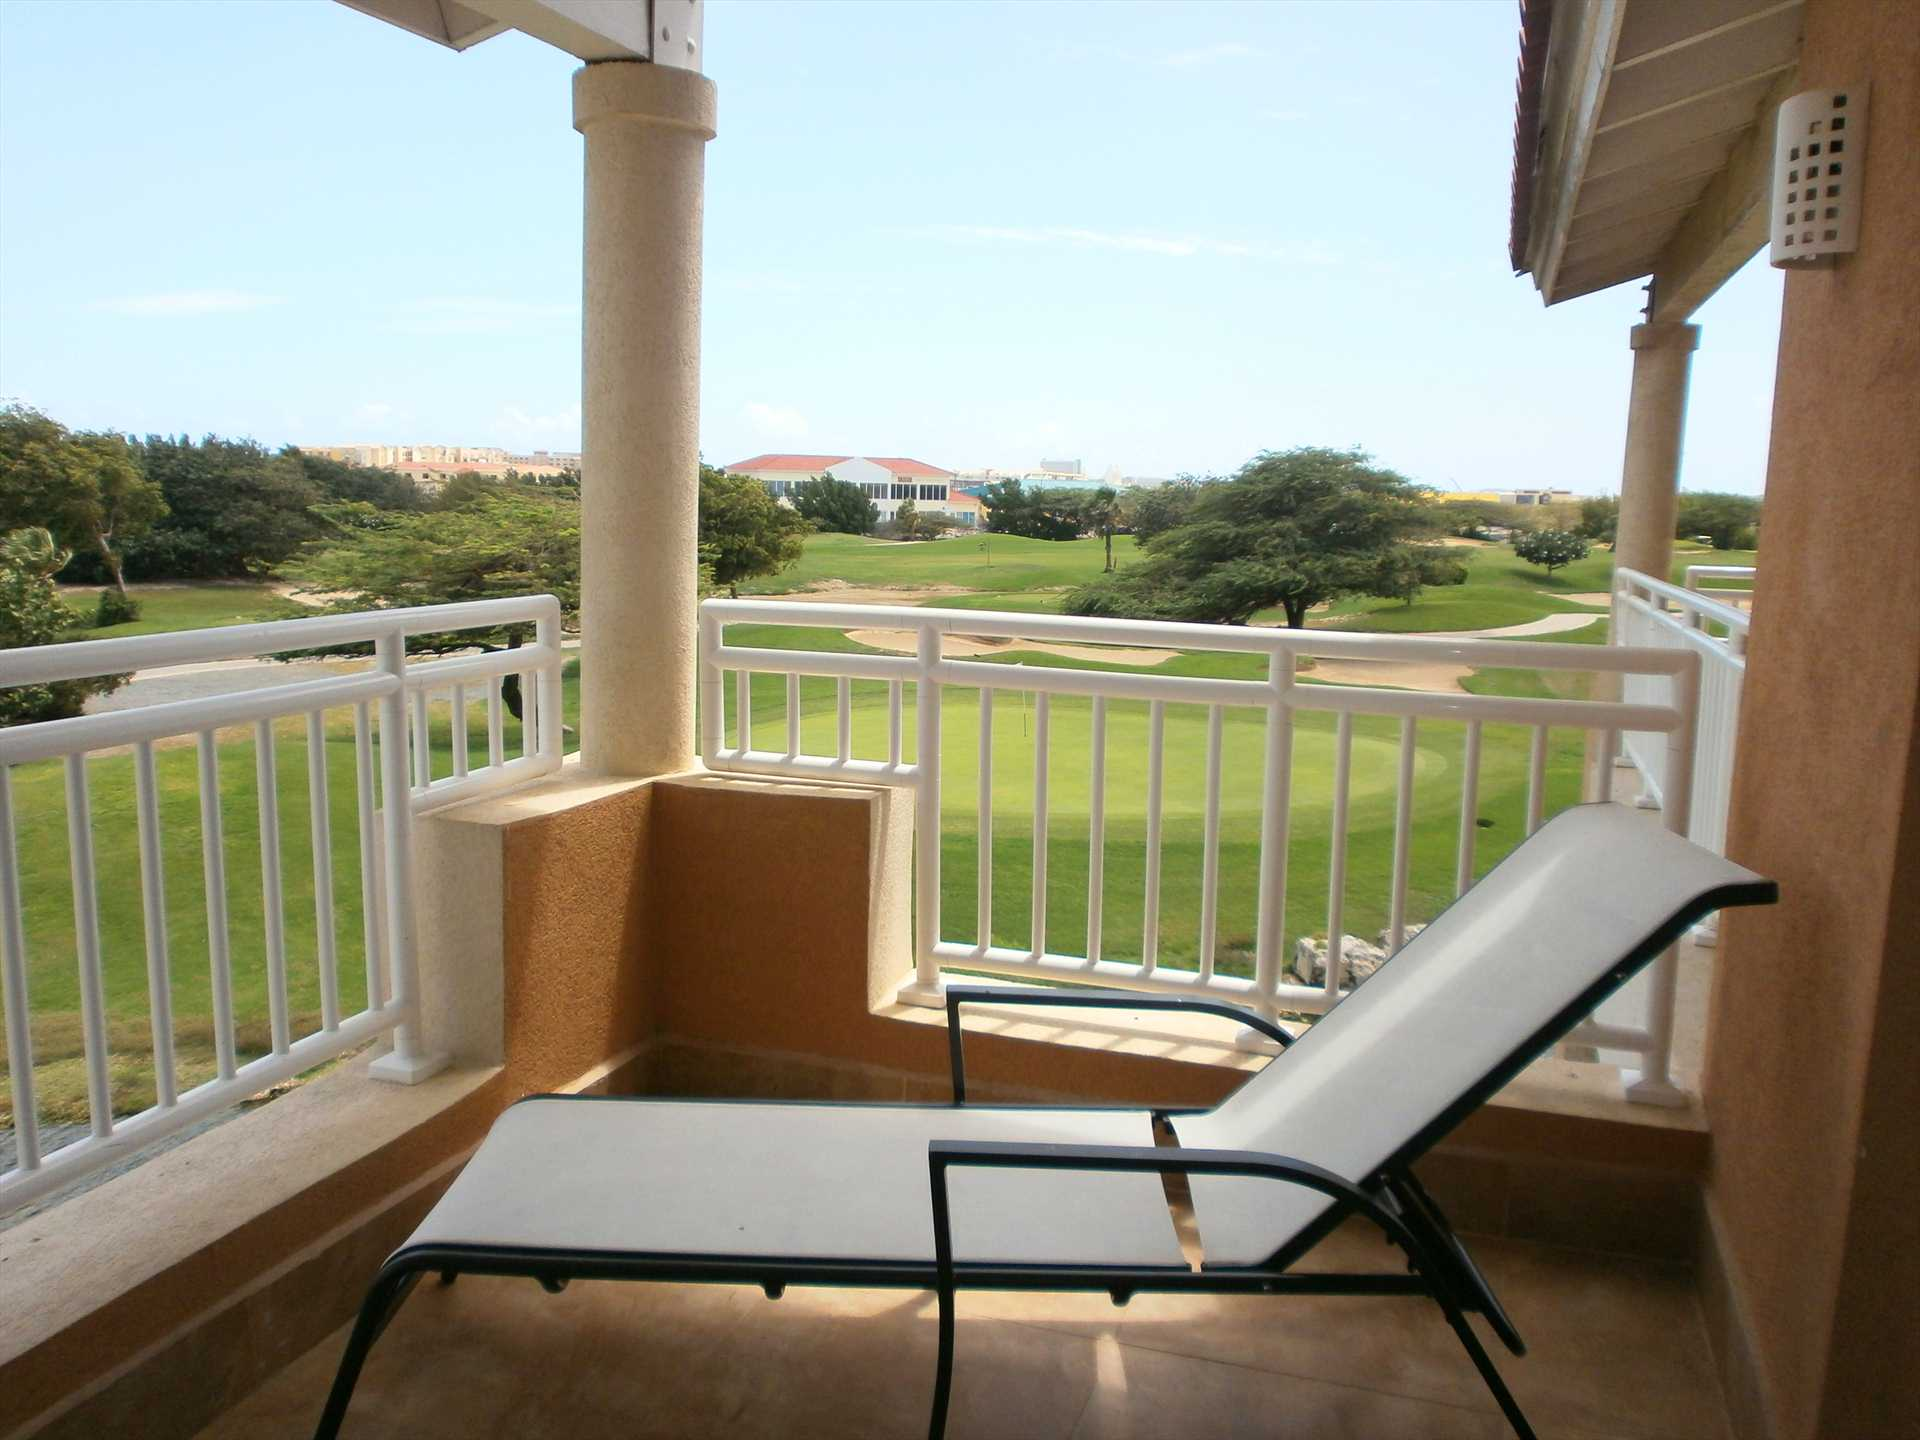 Enjoy in your private balcony the serene sounds of the surrounding nature.